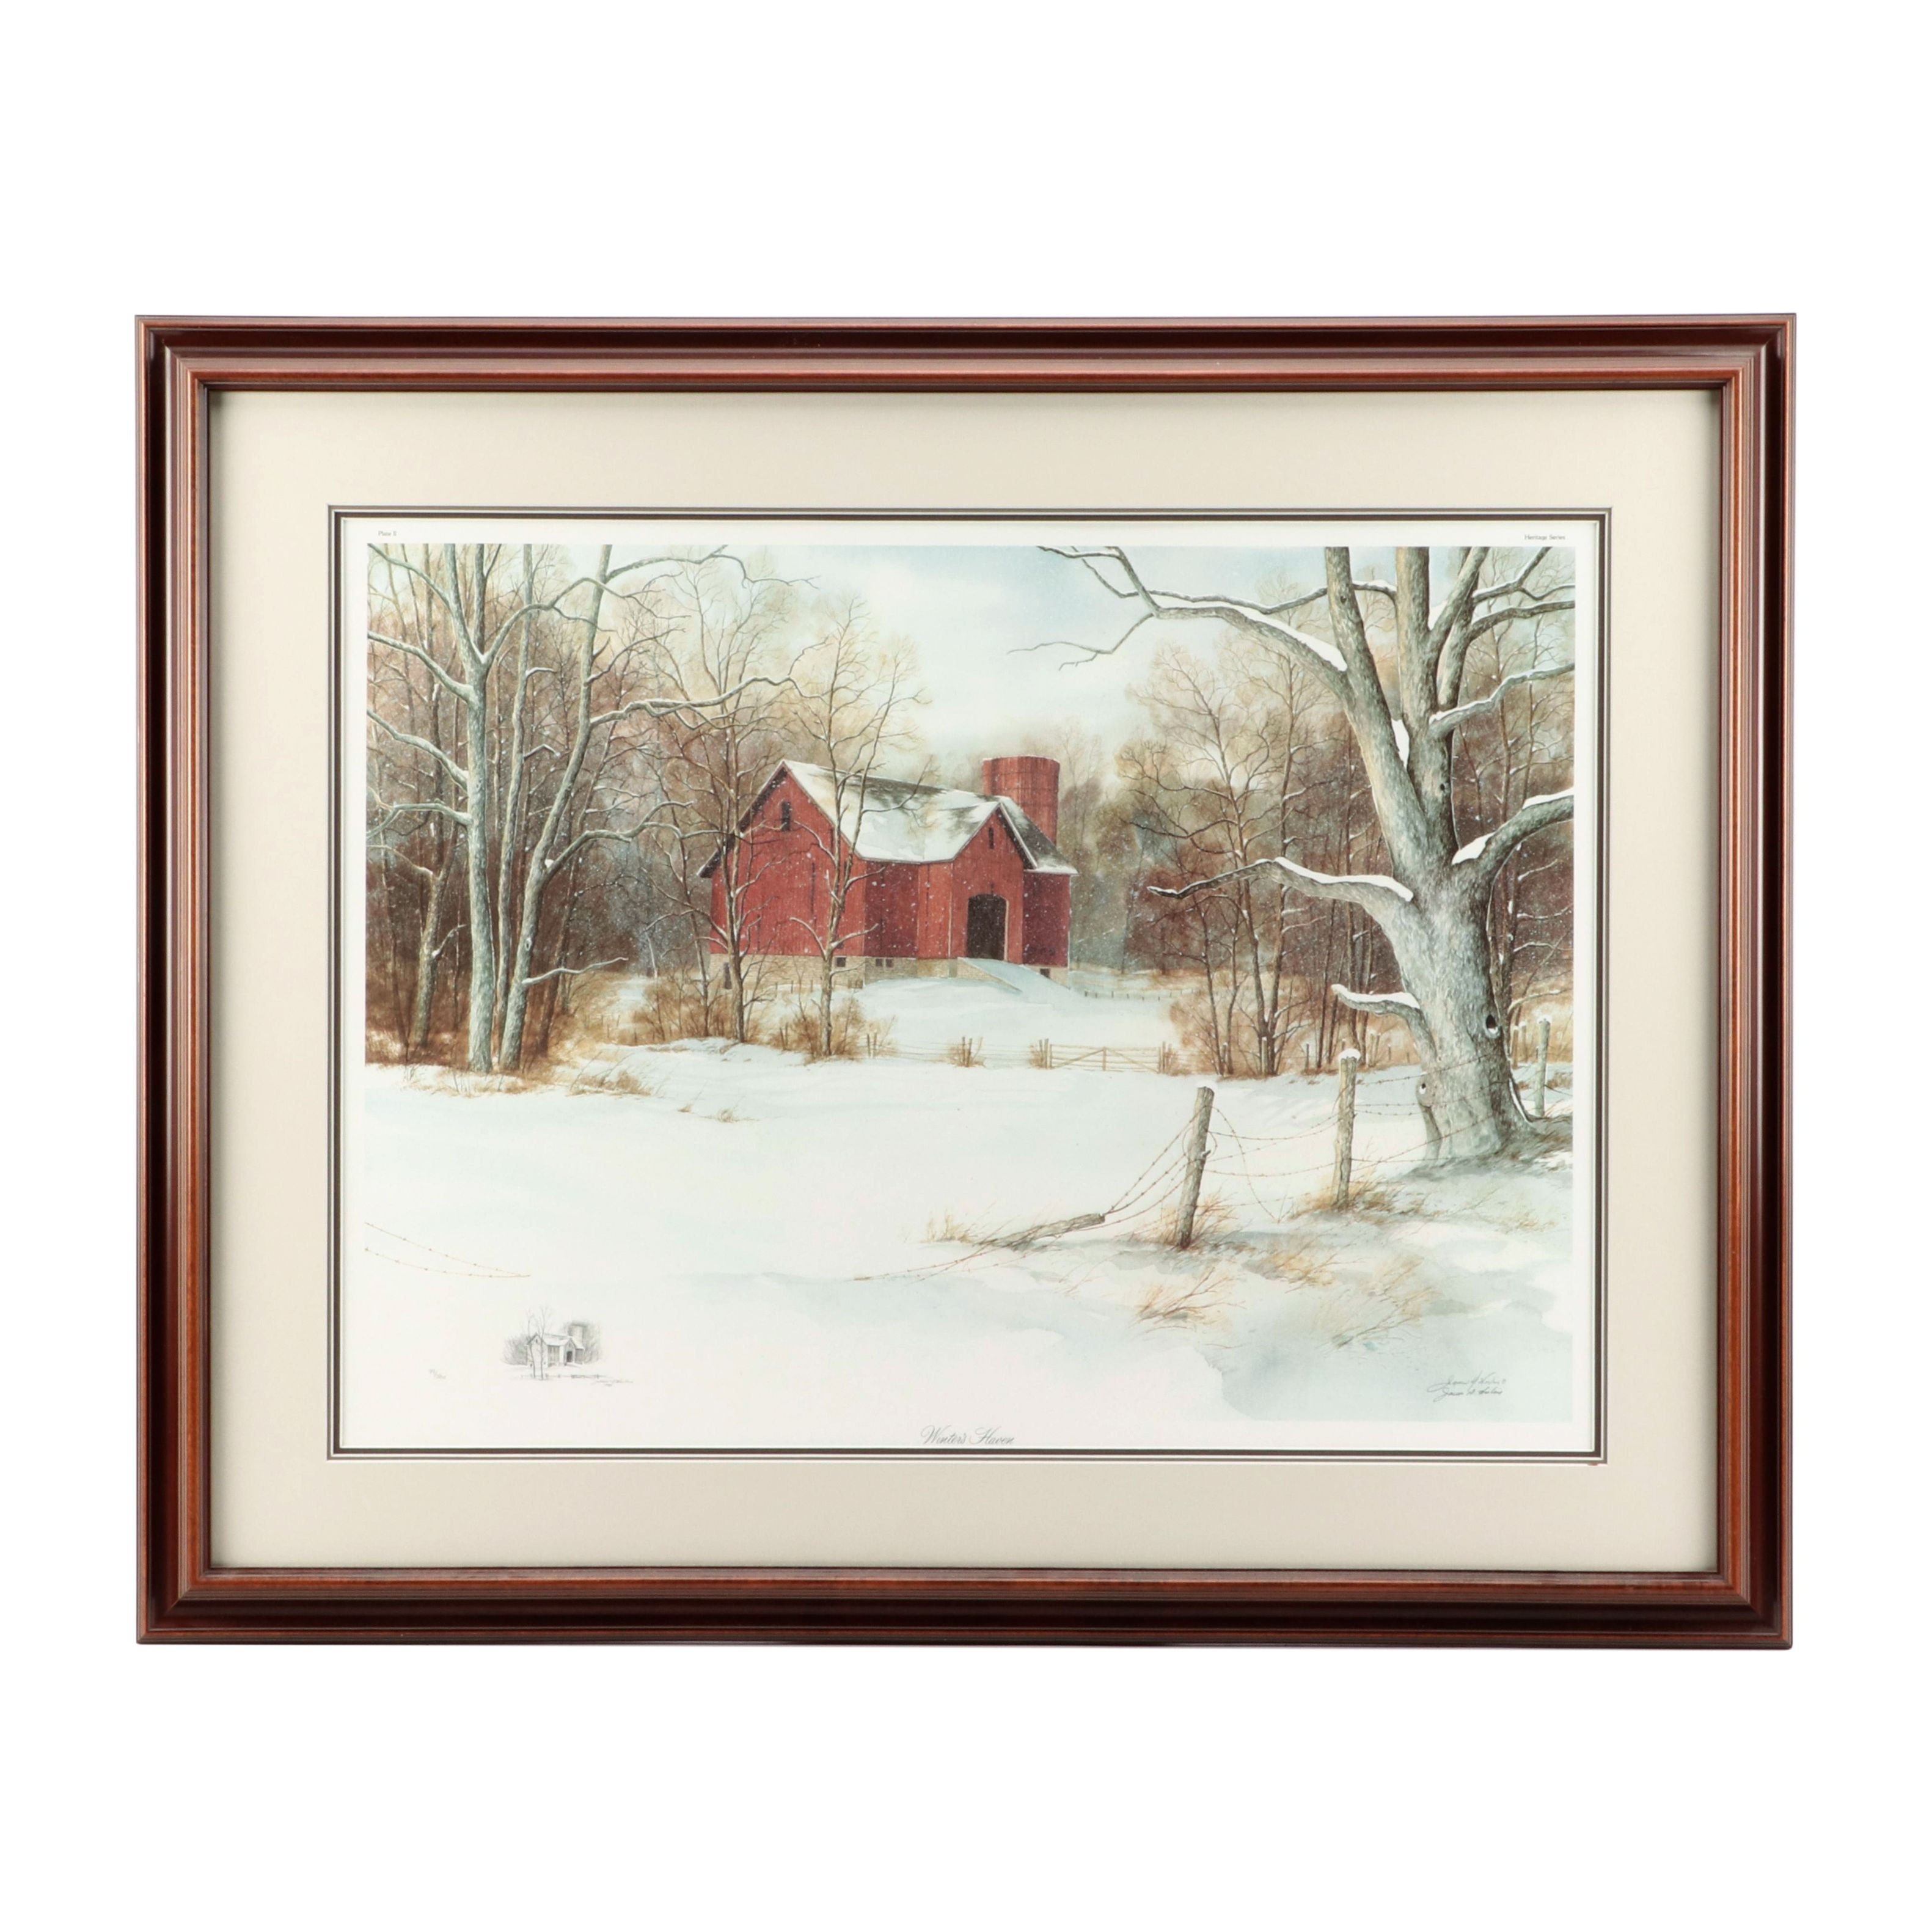 James D. Werline 1989 Limited Edition Offset Lithograph with Graphite Remarque